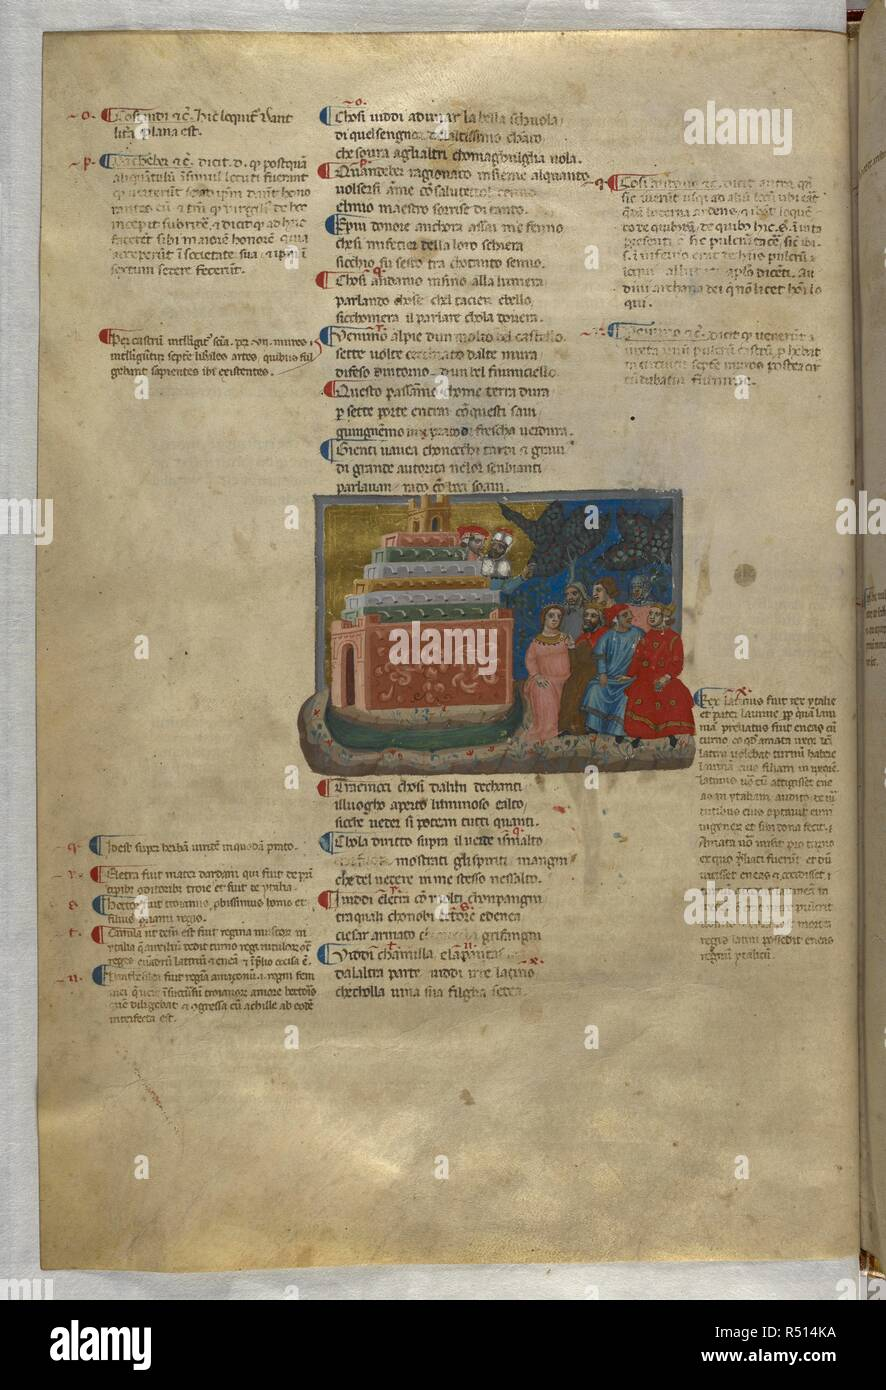 Inferno: The noble castle, with virtuous pagans nearby. Dante Alighieri, Divina Commedia ( The Divine Comedy ), with a commentary in Latin. 1st half of the 14th century. Source: Egerton 943, f.9v. Language: Italian, Latin. - Stock Image